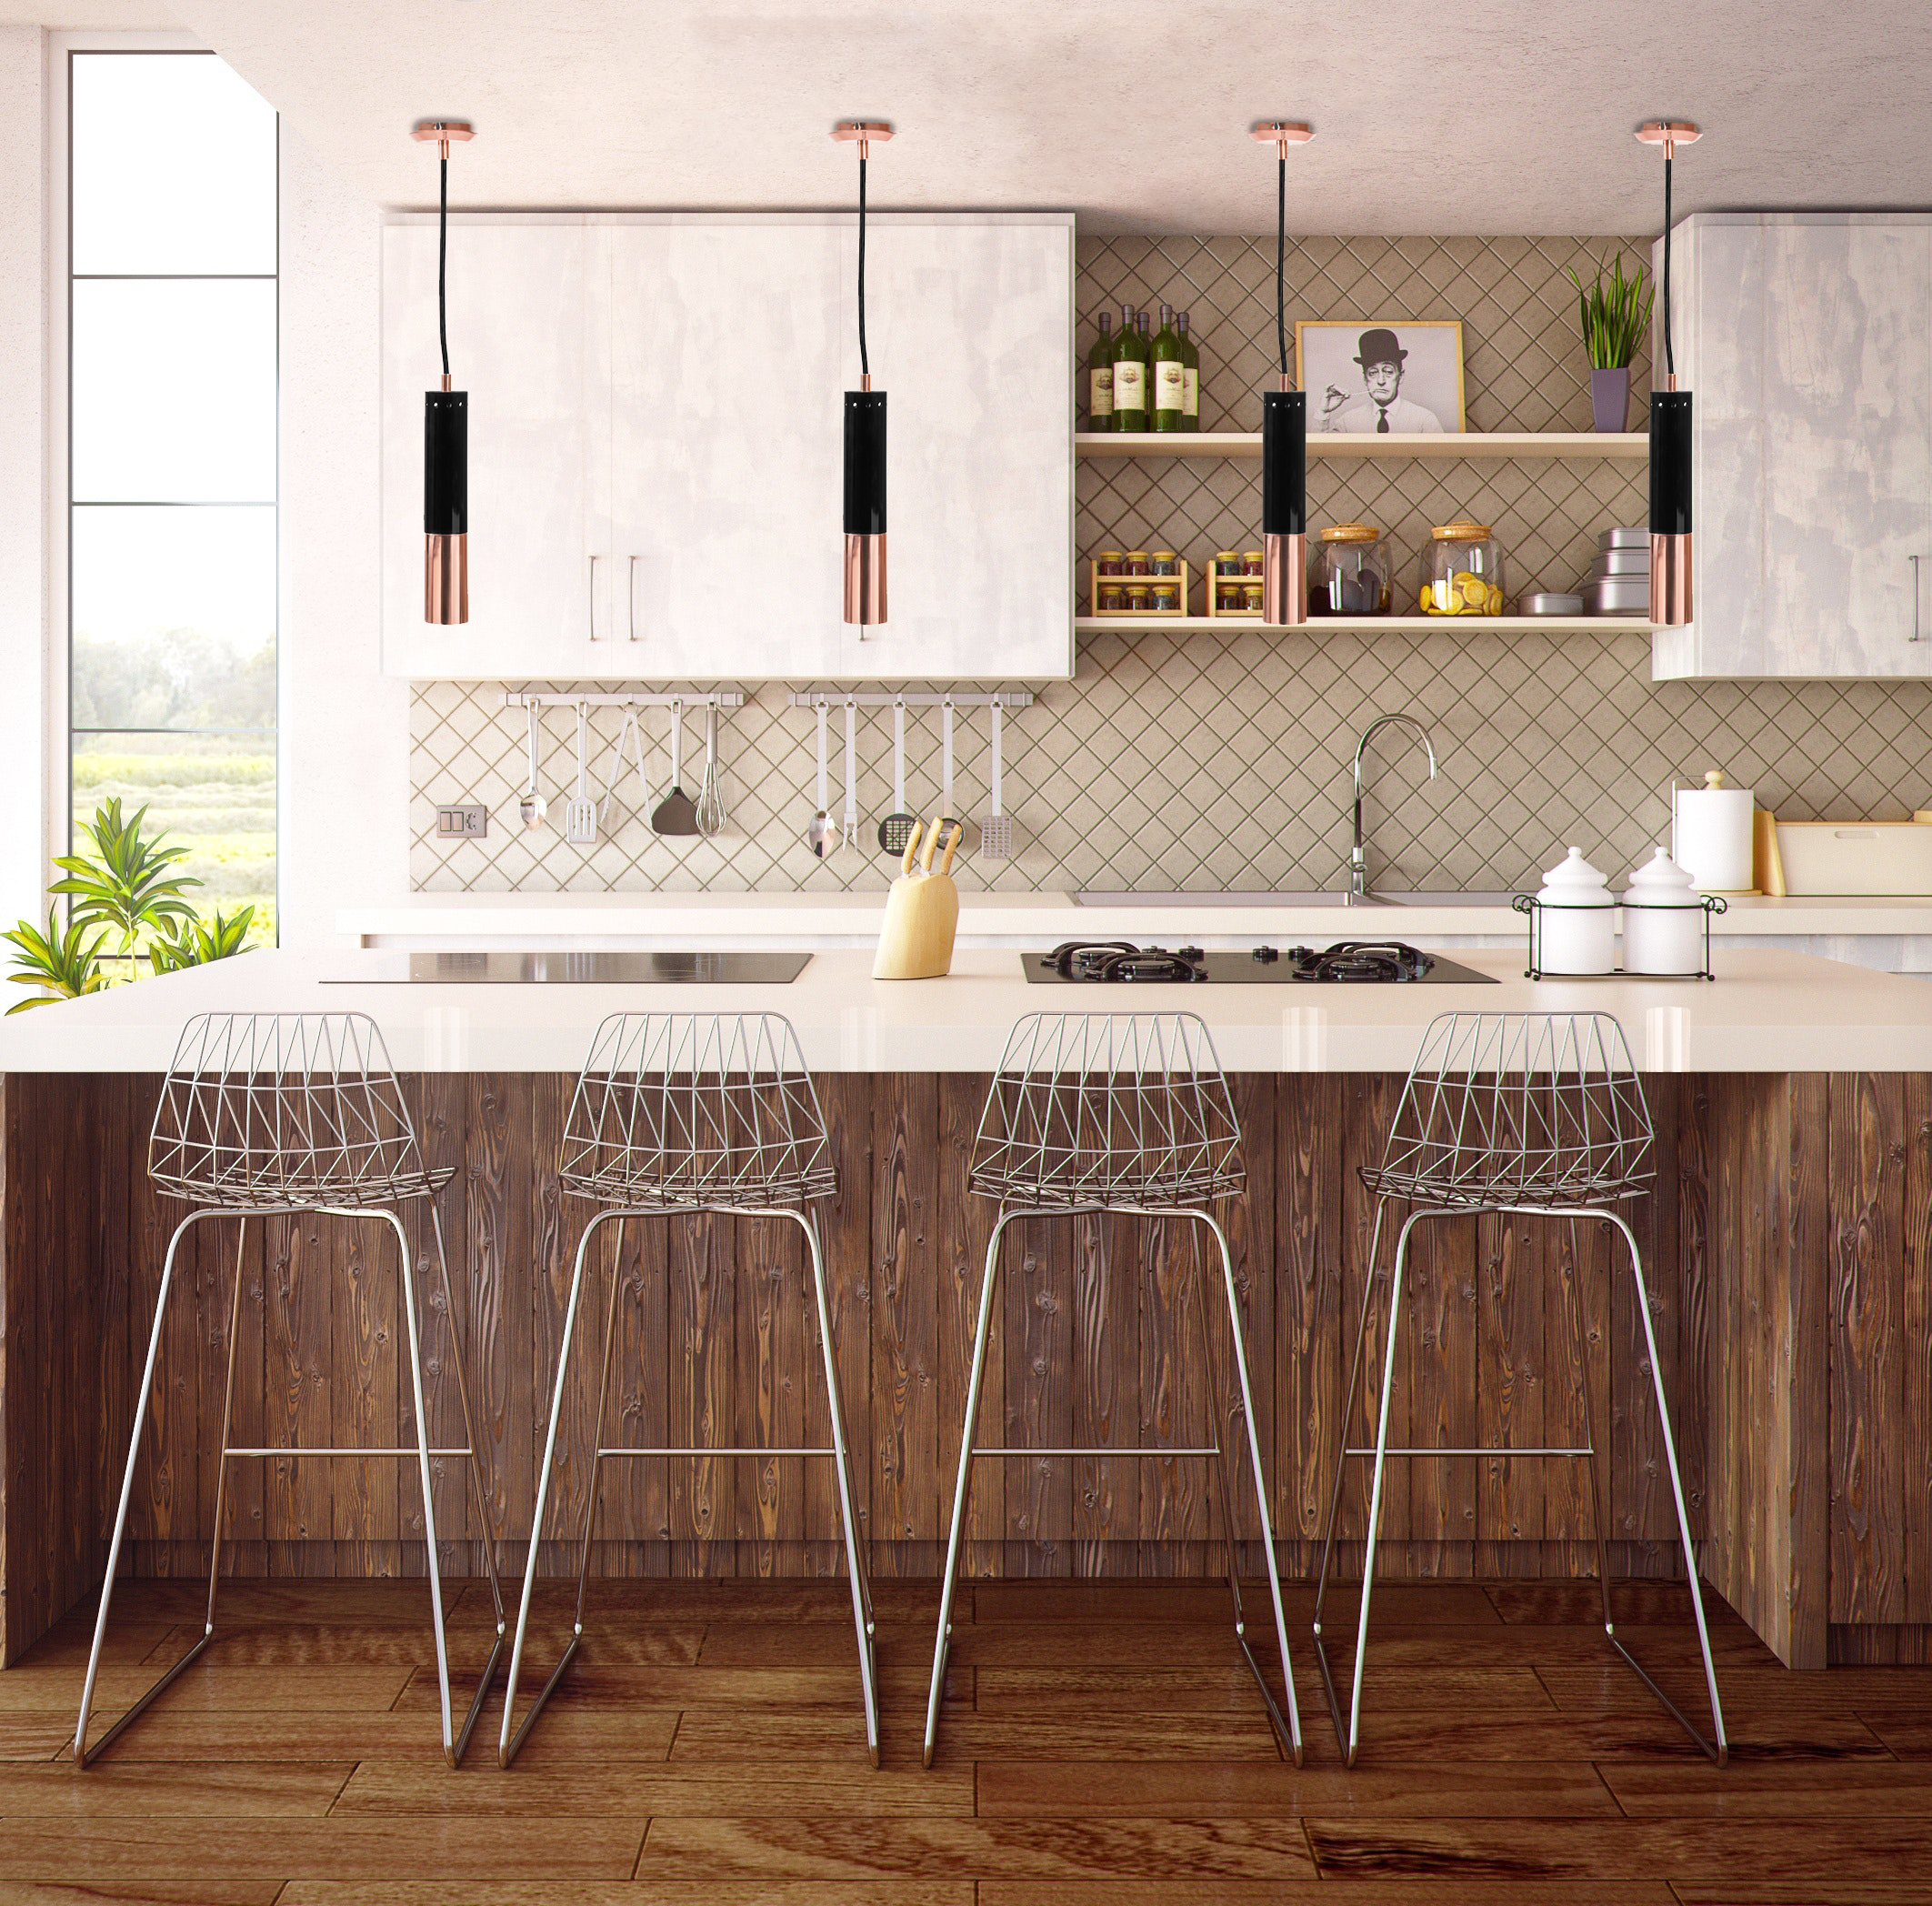 These Sunny Vintage Industrial Style Lofts Will Make You Happier During Summer! vintage industrial style These Sunny Vintage Industrial Style Lofts Will Make You Happier During Summer! ike 1